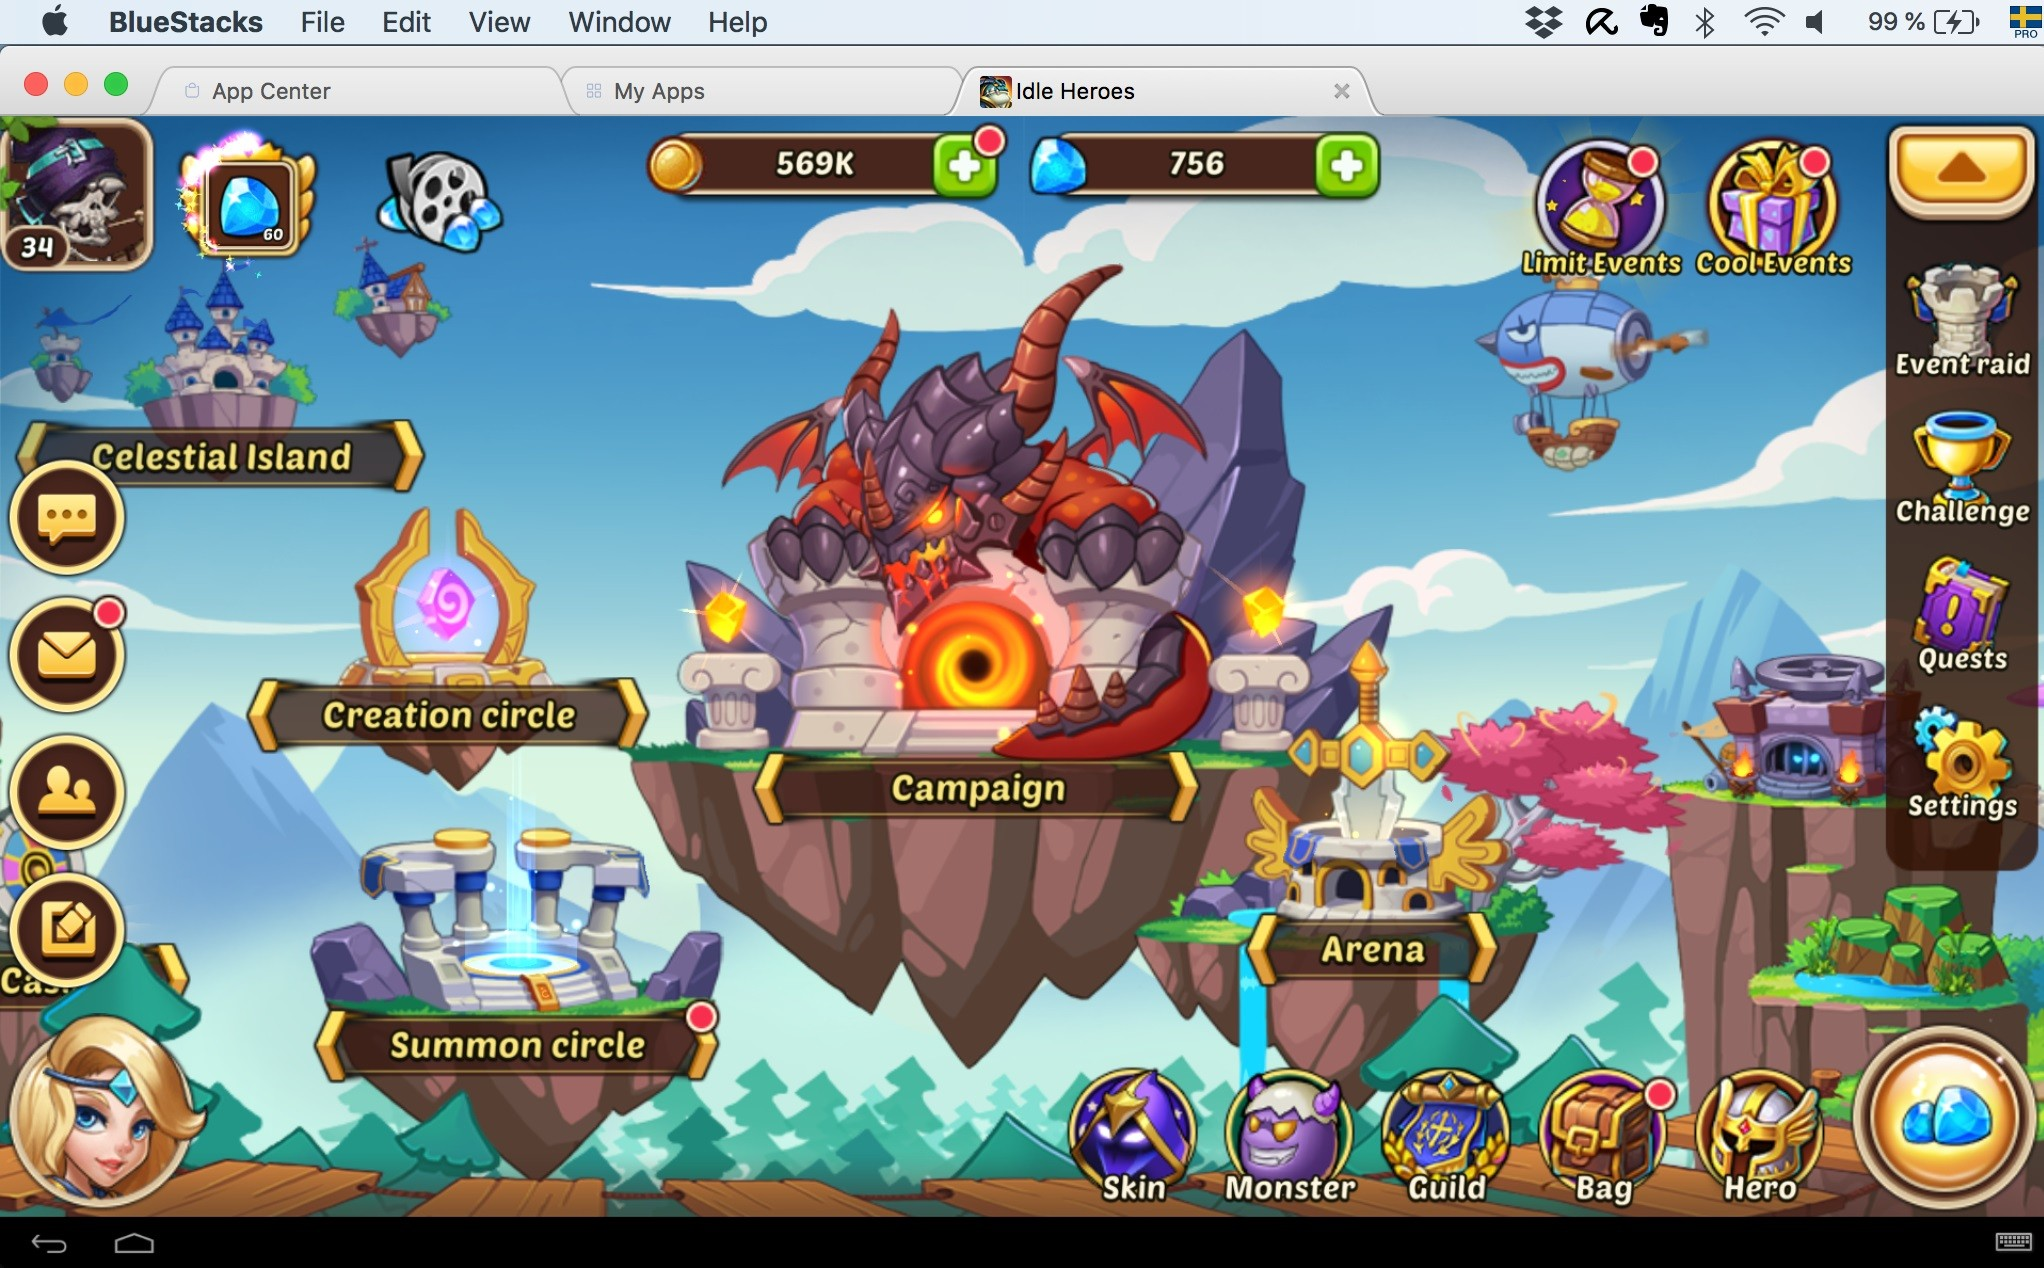 Idle Heroes Beginners' Guide | BlueStacks